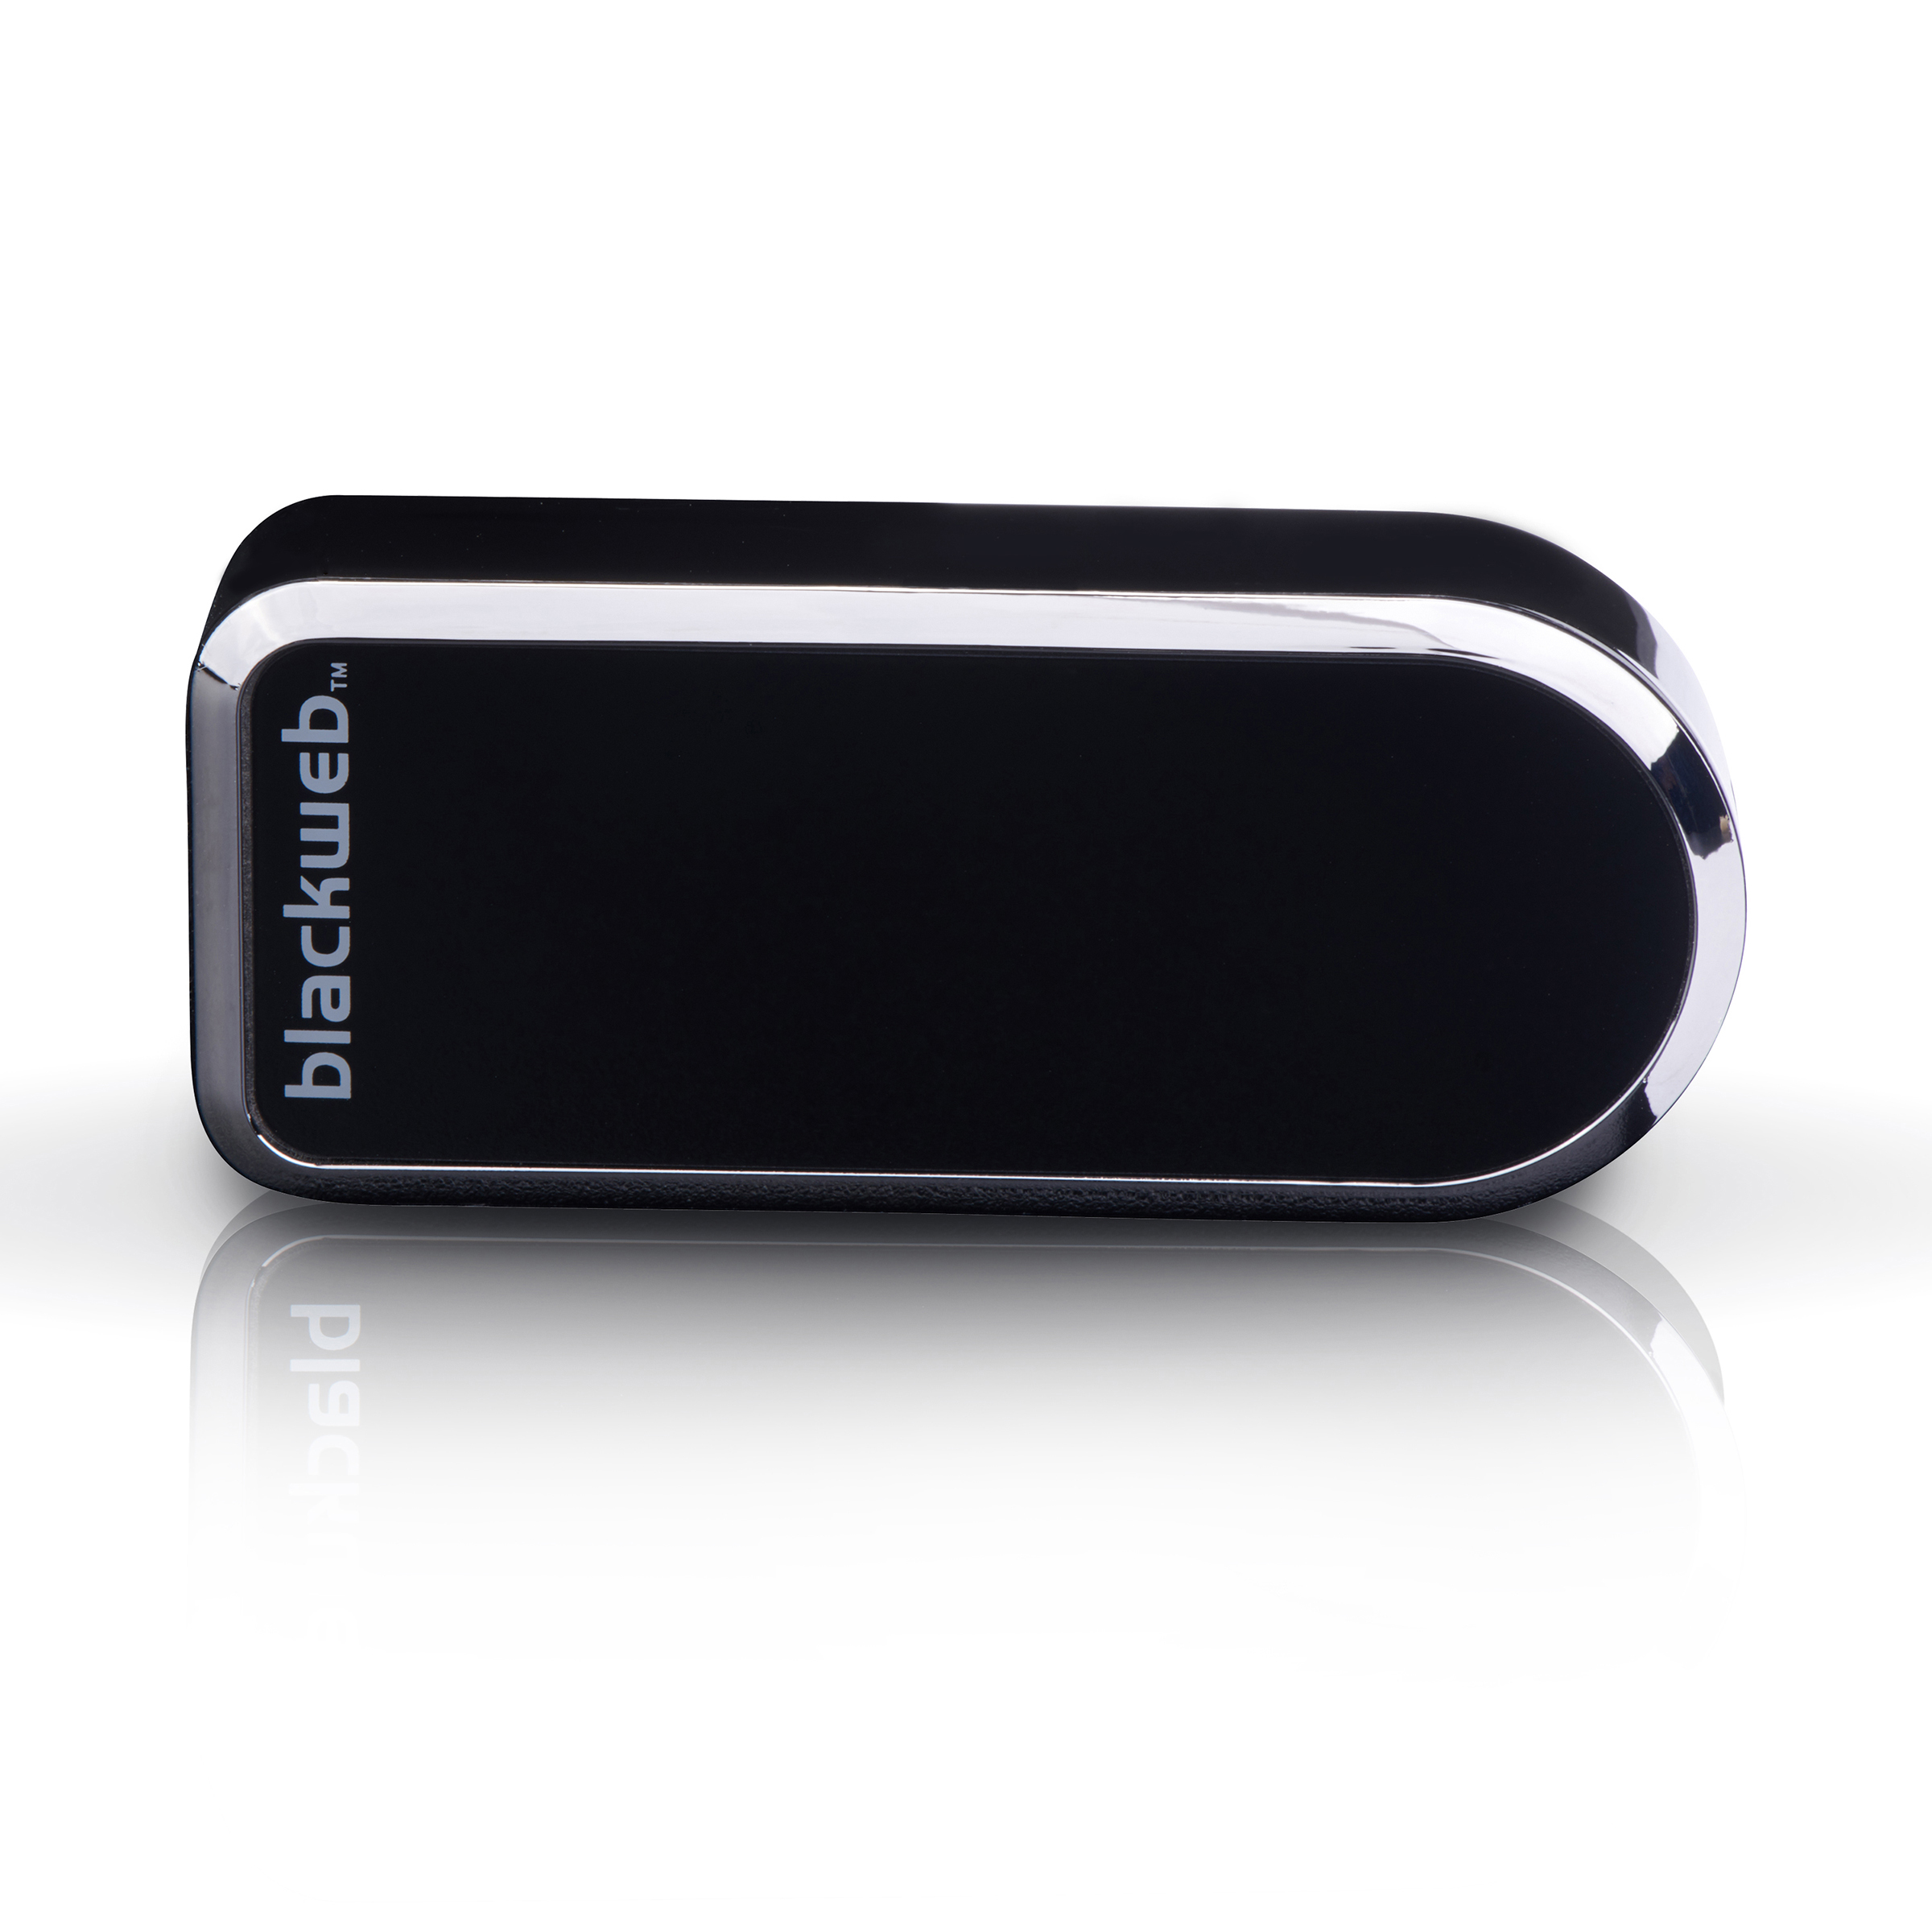 Blackweb Bluetooth Transmitter Set - Stream Audio From a